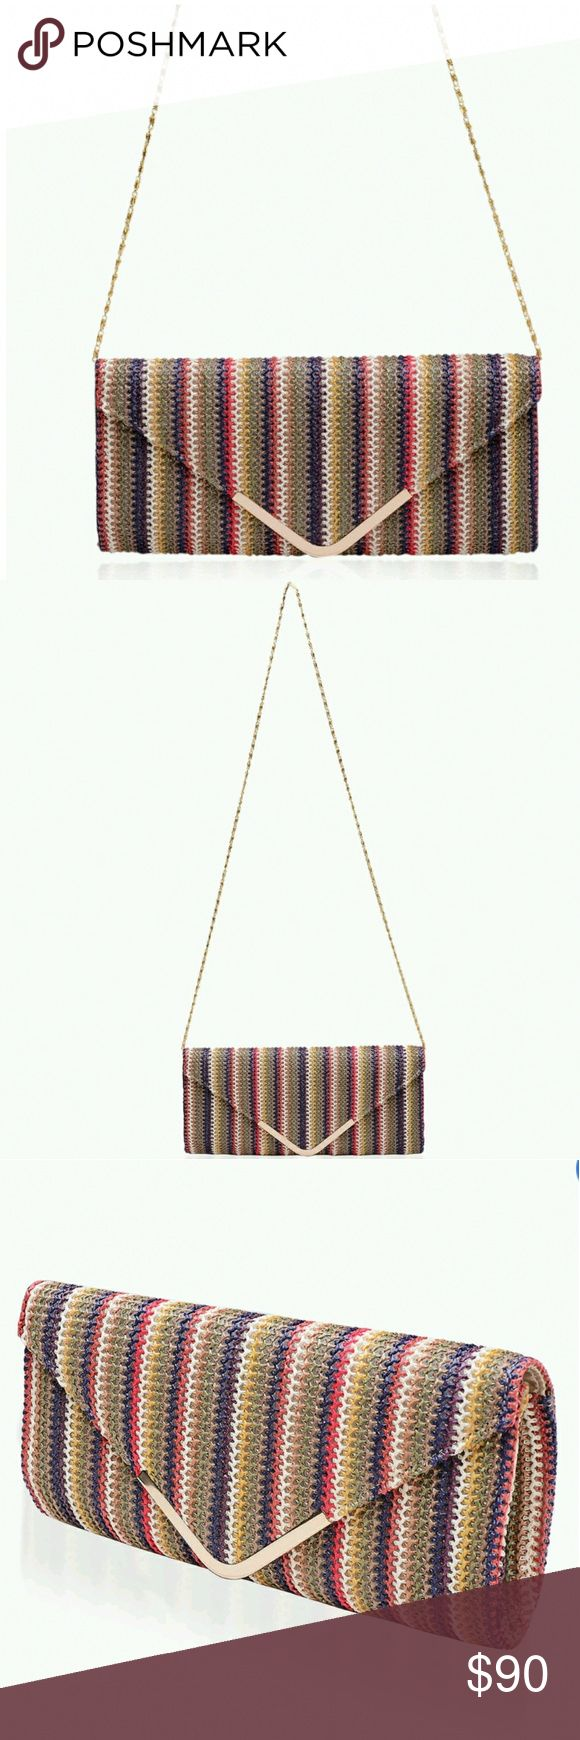 JUST iNMulti-color clutch (11x5.5x5) J Francis Collection multi-color stripe pattern handbag. This satin bag is the perfect accessory to jazz up any of your classy ensembles. Bags Clutches & Wristlets